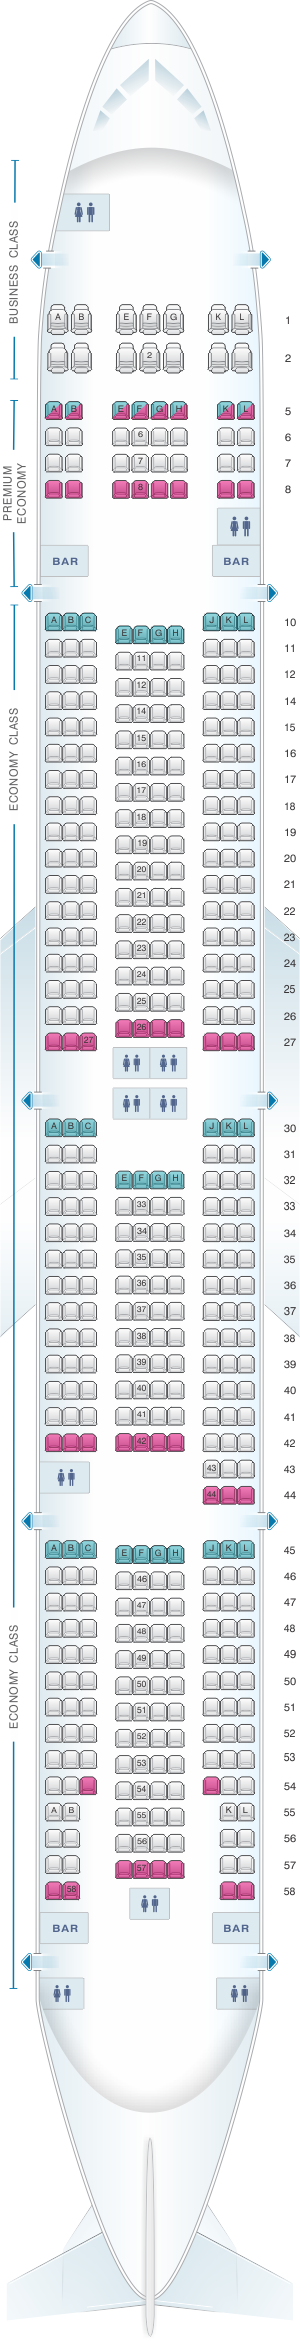 Seat map for Air France Boeing B777 300 Long-Haul International 468PAX